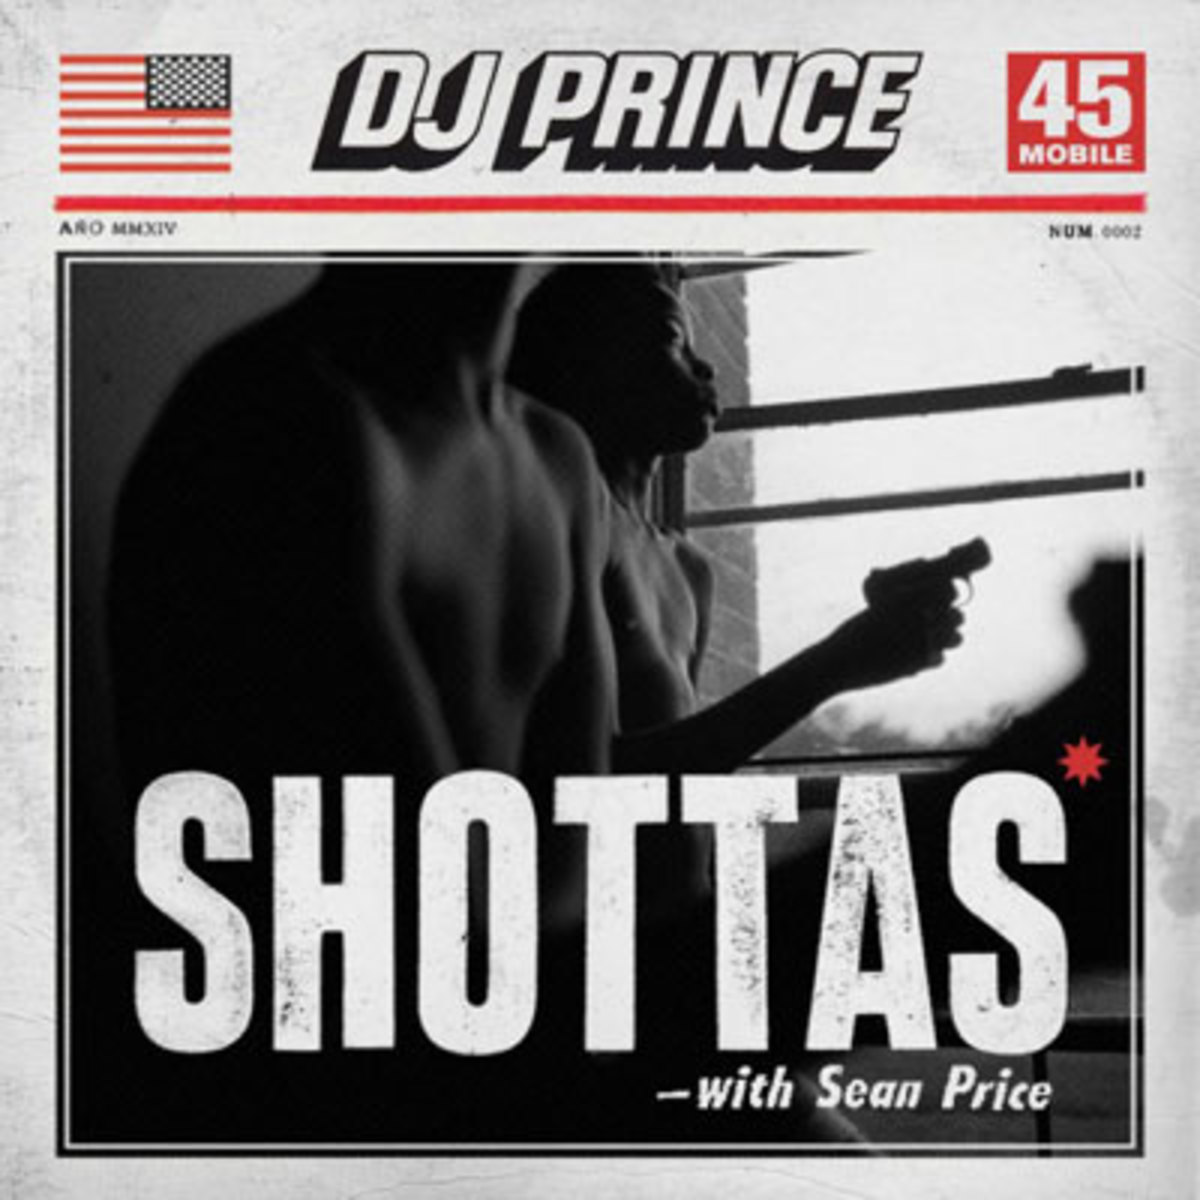 djprince-shottas.jpg